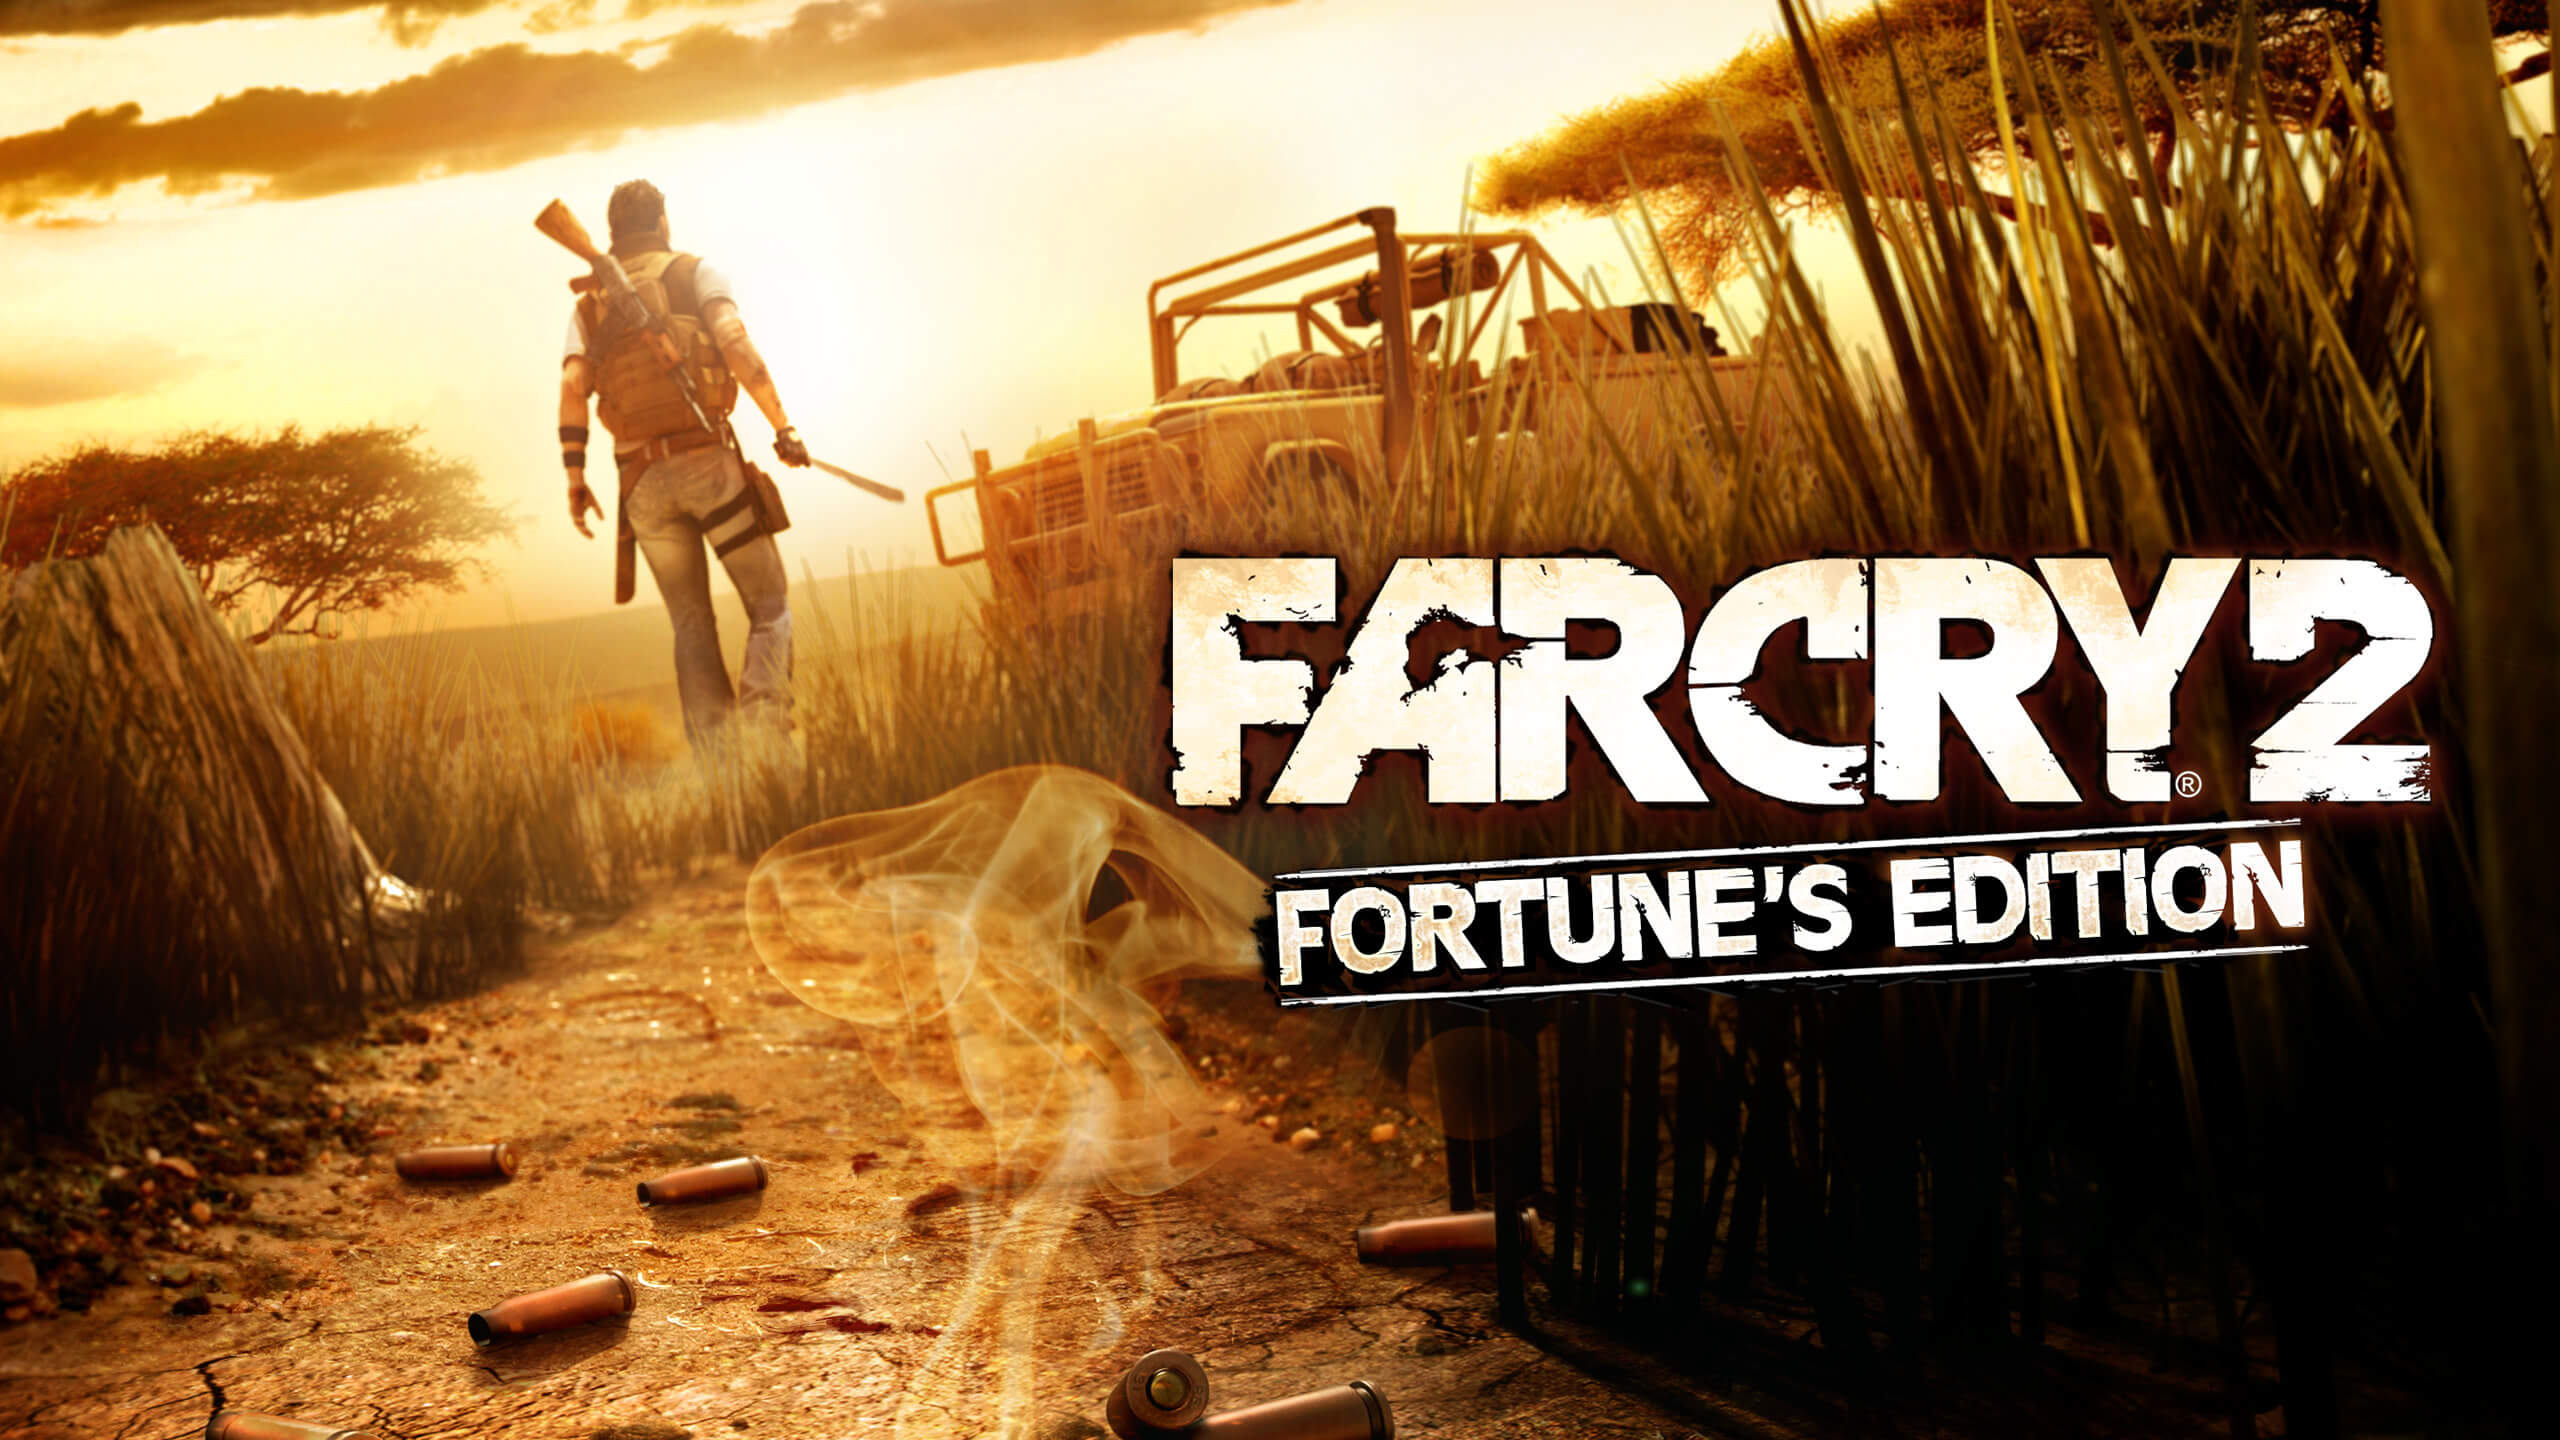 Game incursion – Far Cry 2 very good game for its time